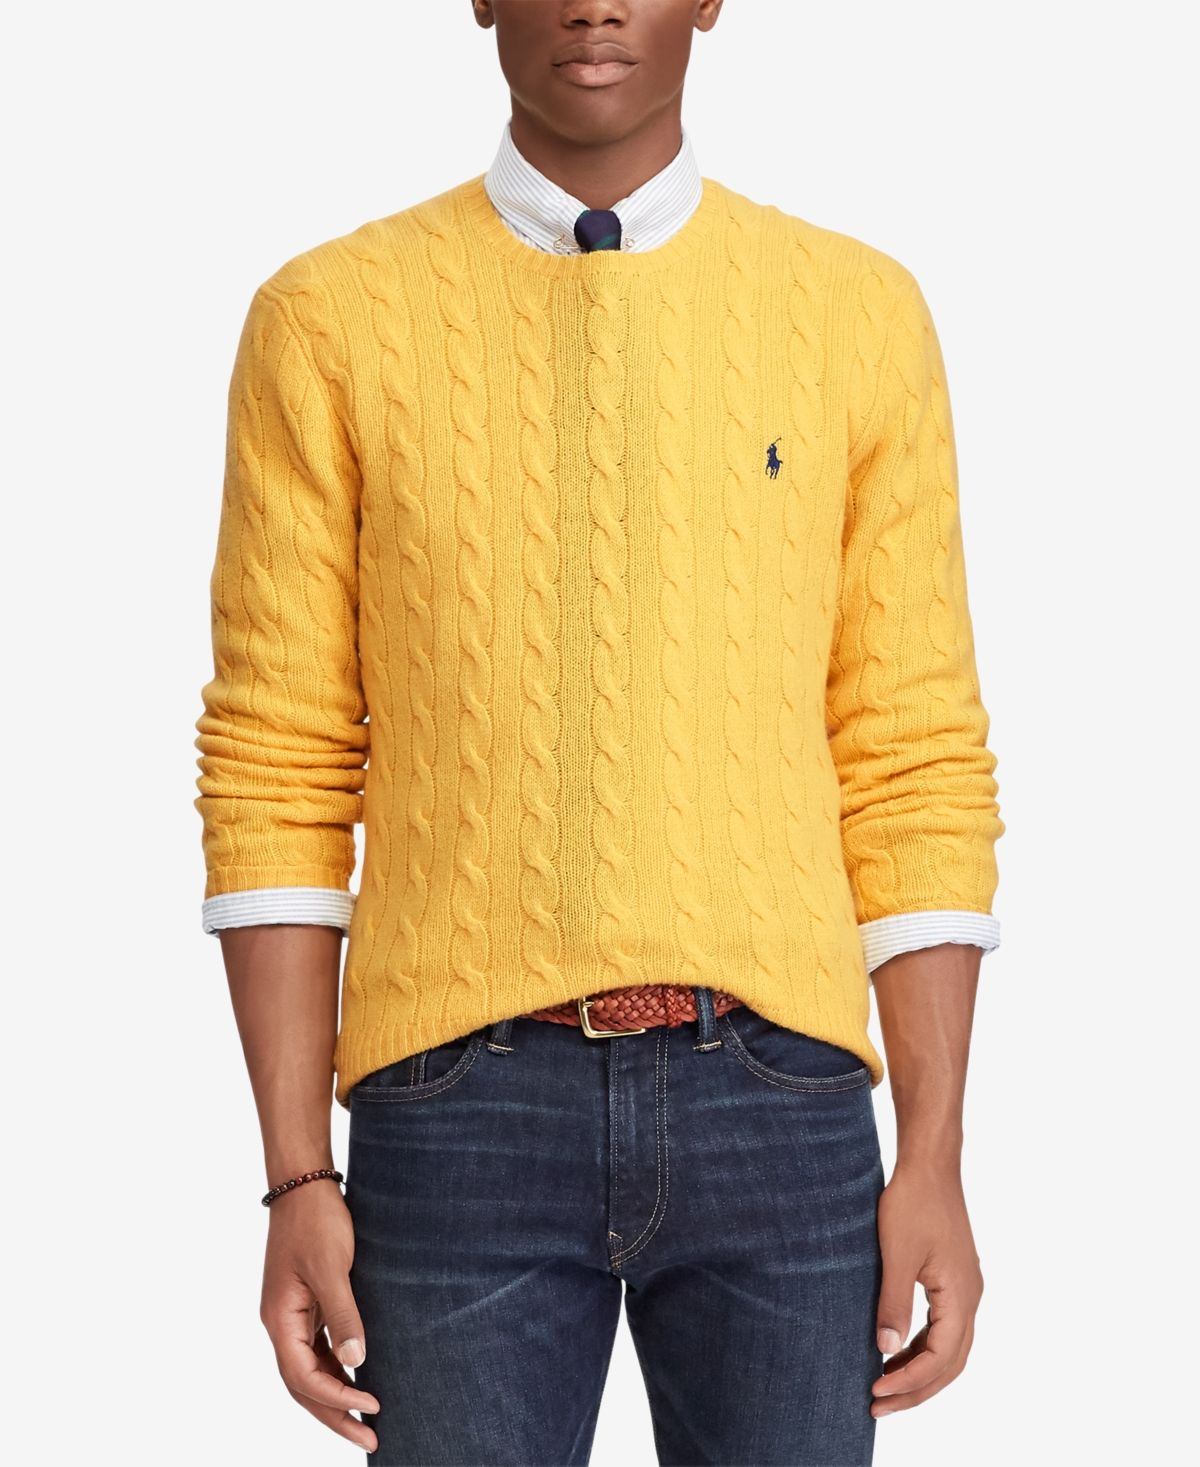 Polo Ralph Lauren Men S Cable Wool Cashmere Sweater Reviews Sweaters Men Macy S In 2020 Mens Fashion Sweaters Crew Neck Sweater Outfit Mens Cable Knit Sweater